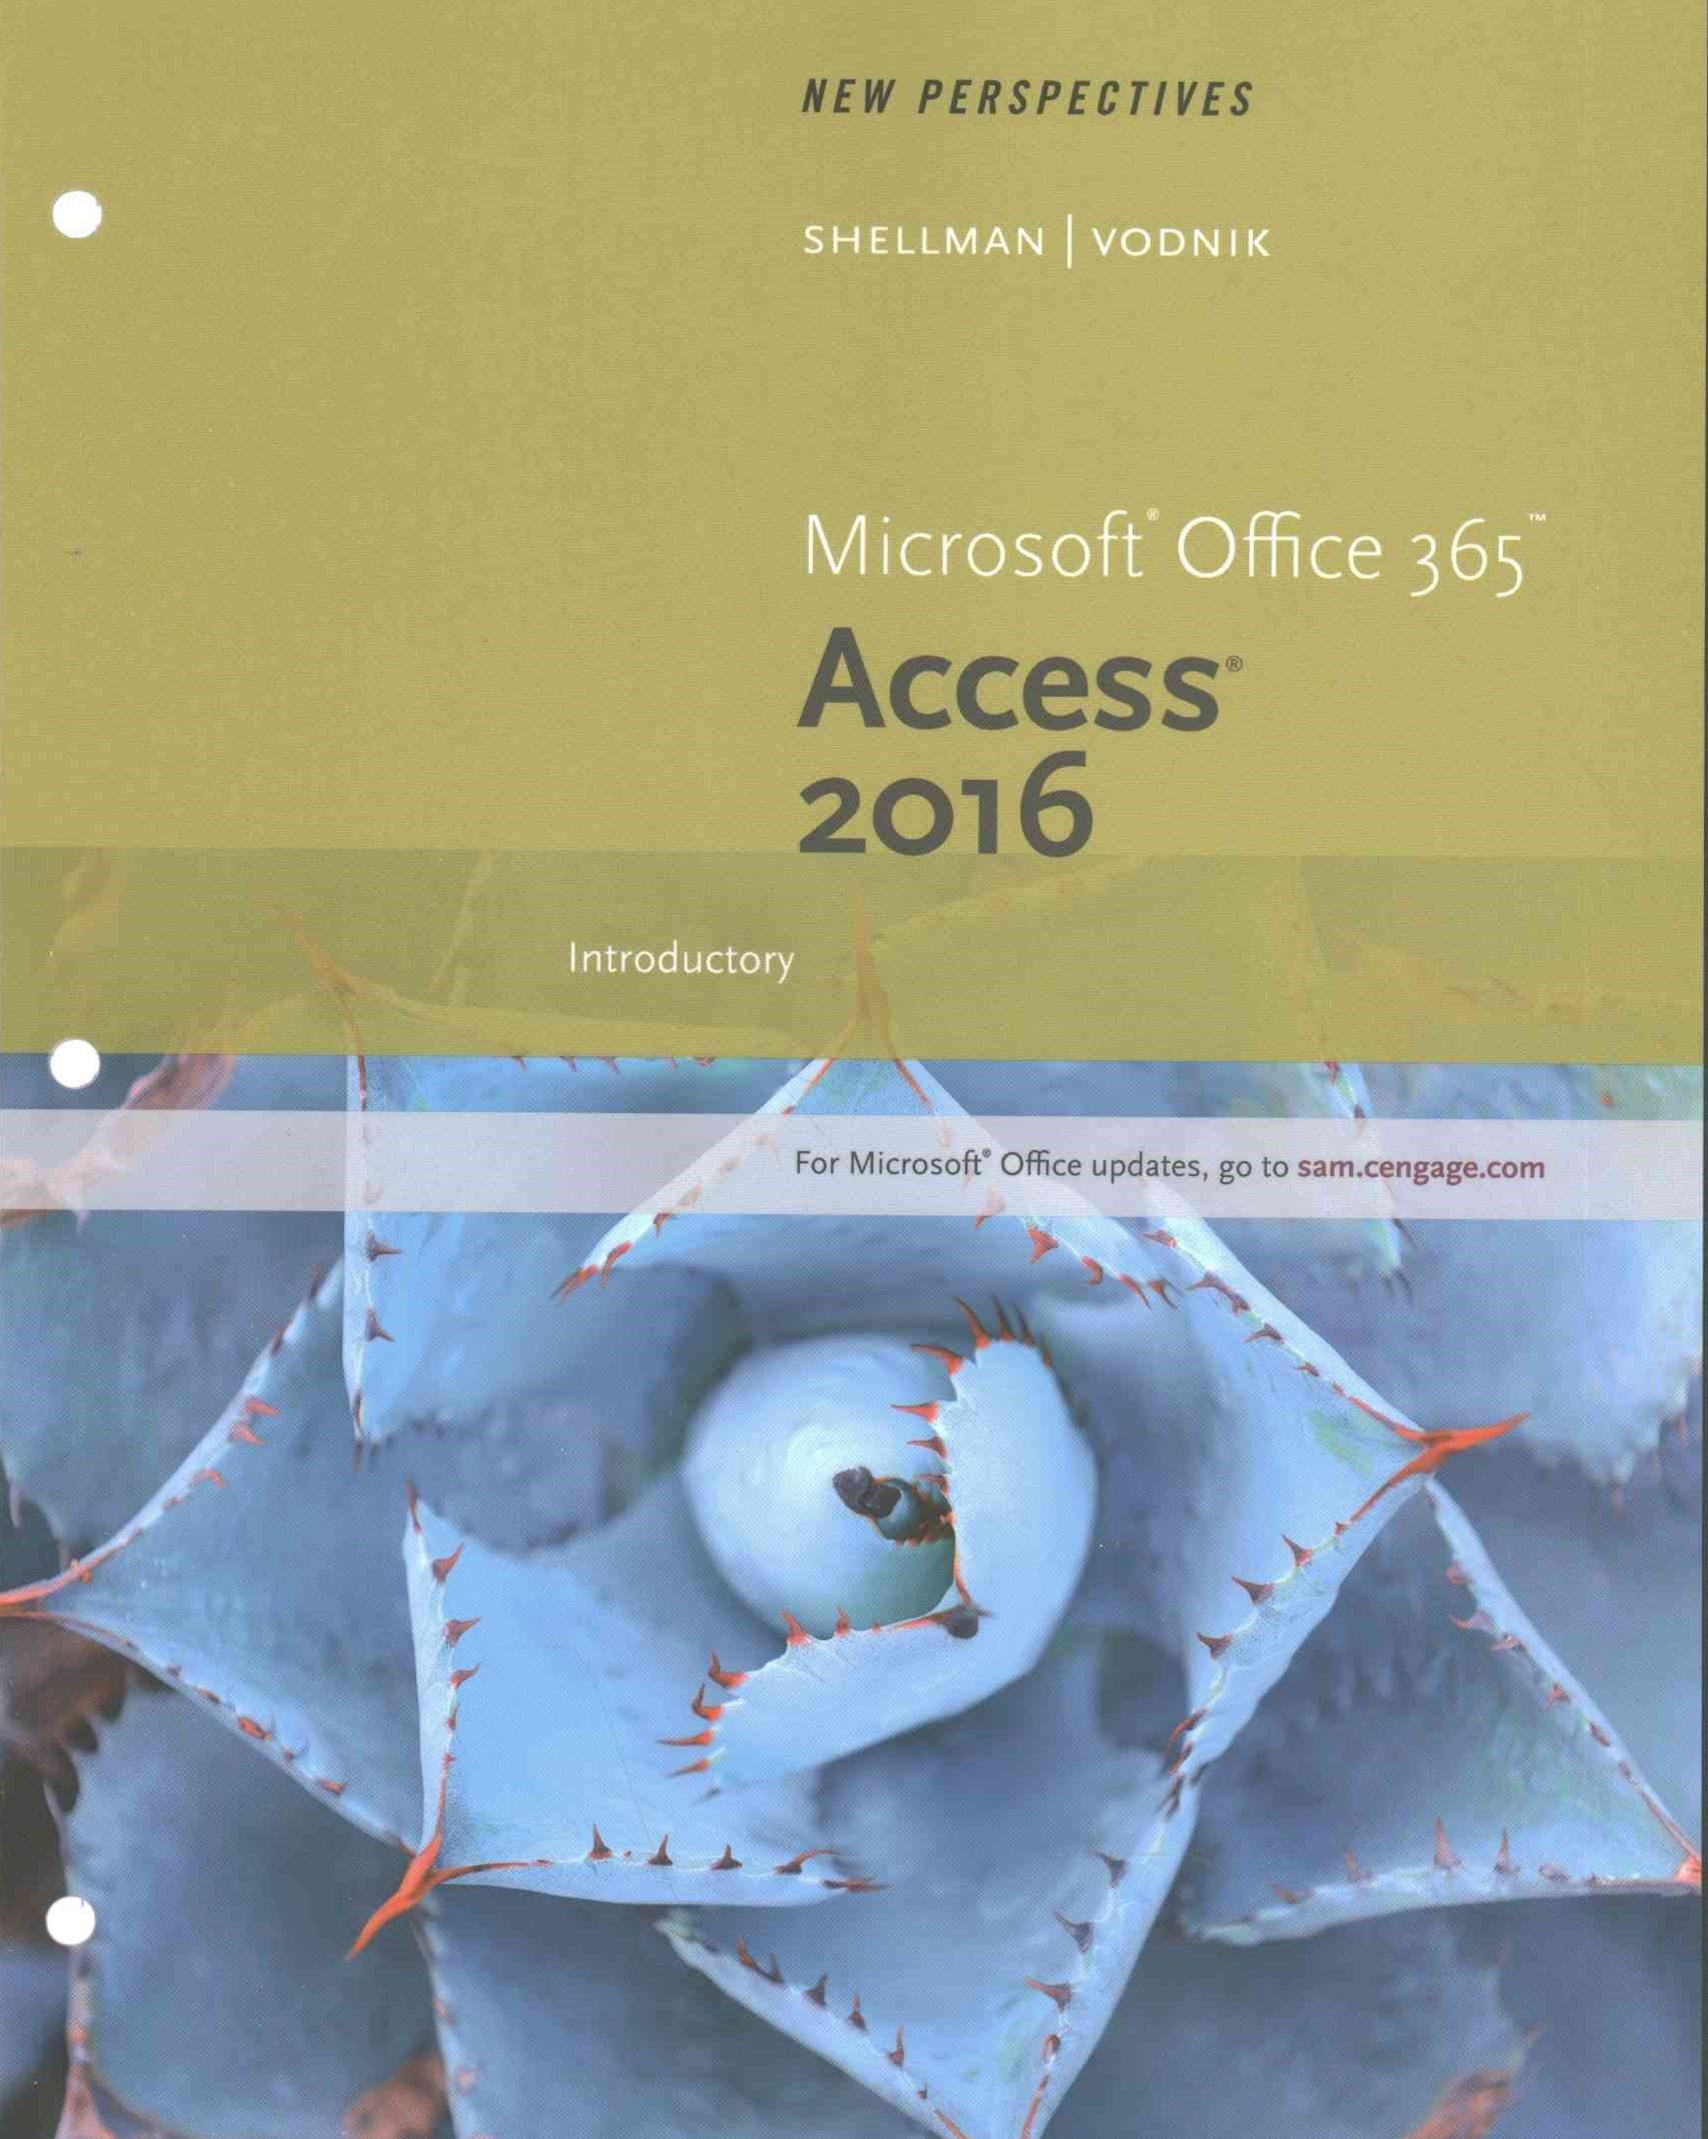 New Perspectives Microsoft® Office 365 and Access 2016